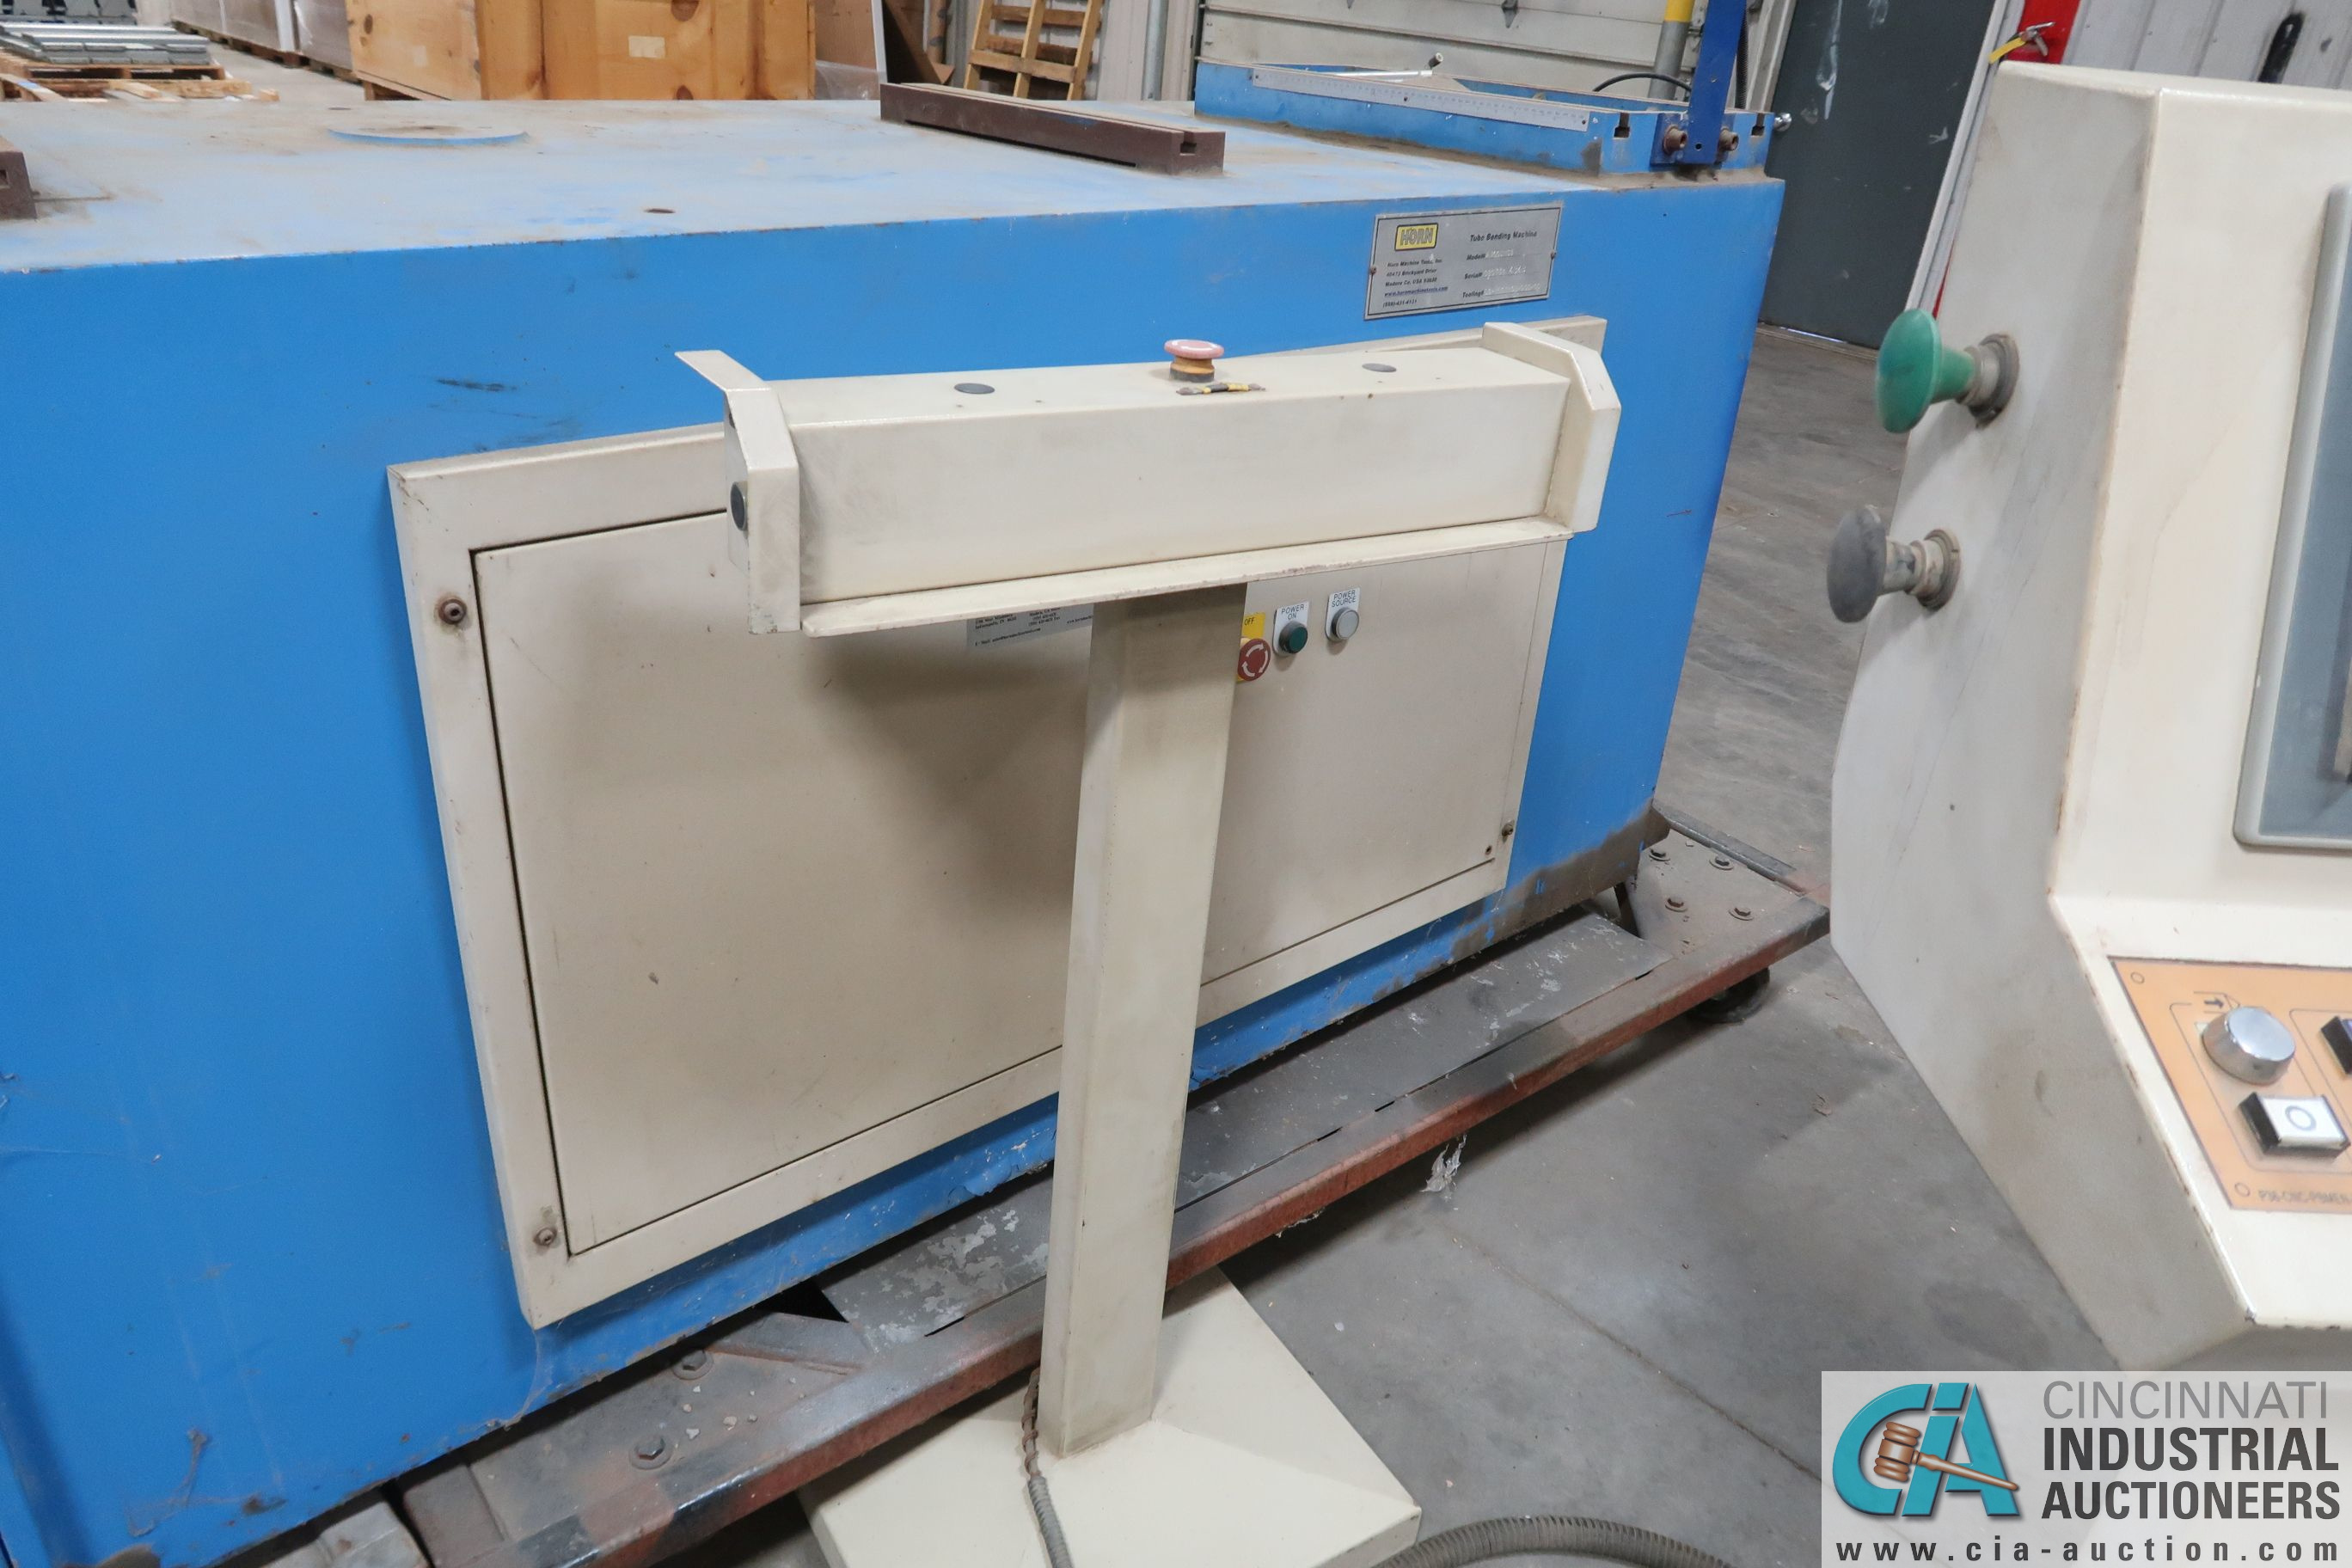 """4"""" HORN MODEL A100 TNCB CNC HYDRAULIC TUBE BENDER; S/N 080334-434B, CAPACITIES: 4"""" X .217 MILL STEEL - Image 6 of 11"""